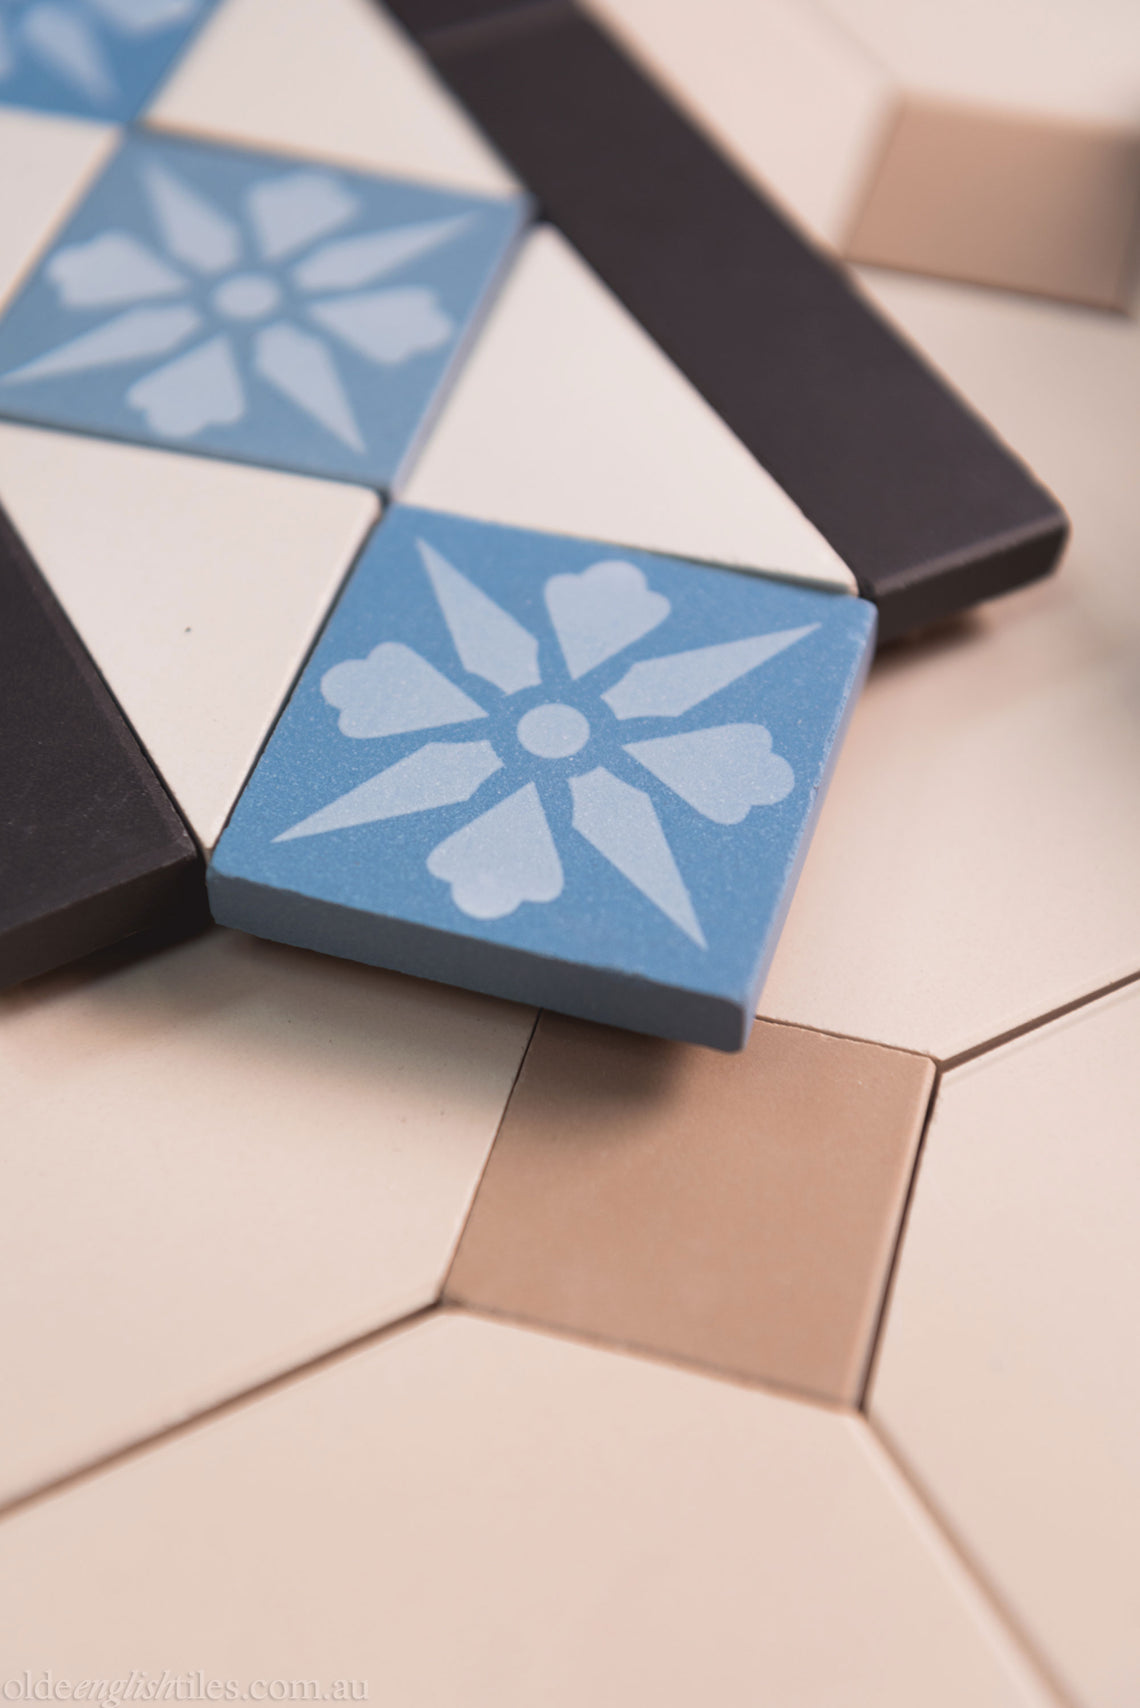 Tessellated Tiles Patterns – Olde English Tiles™